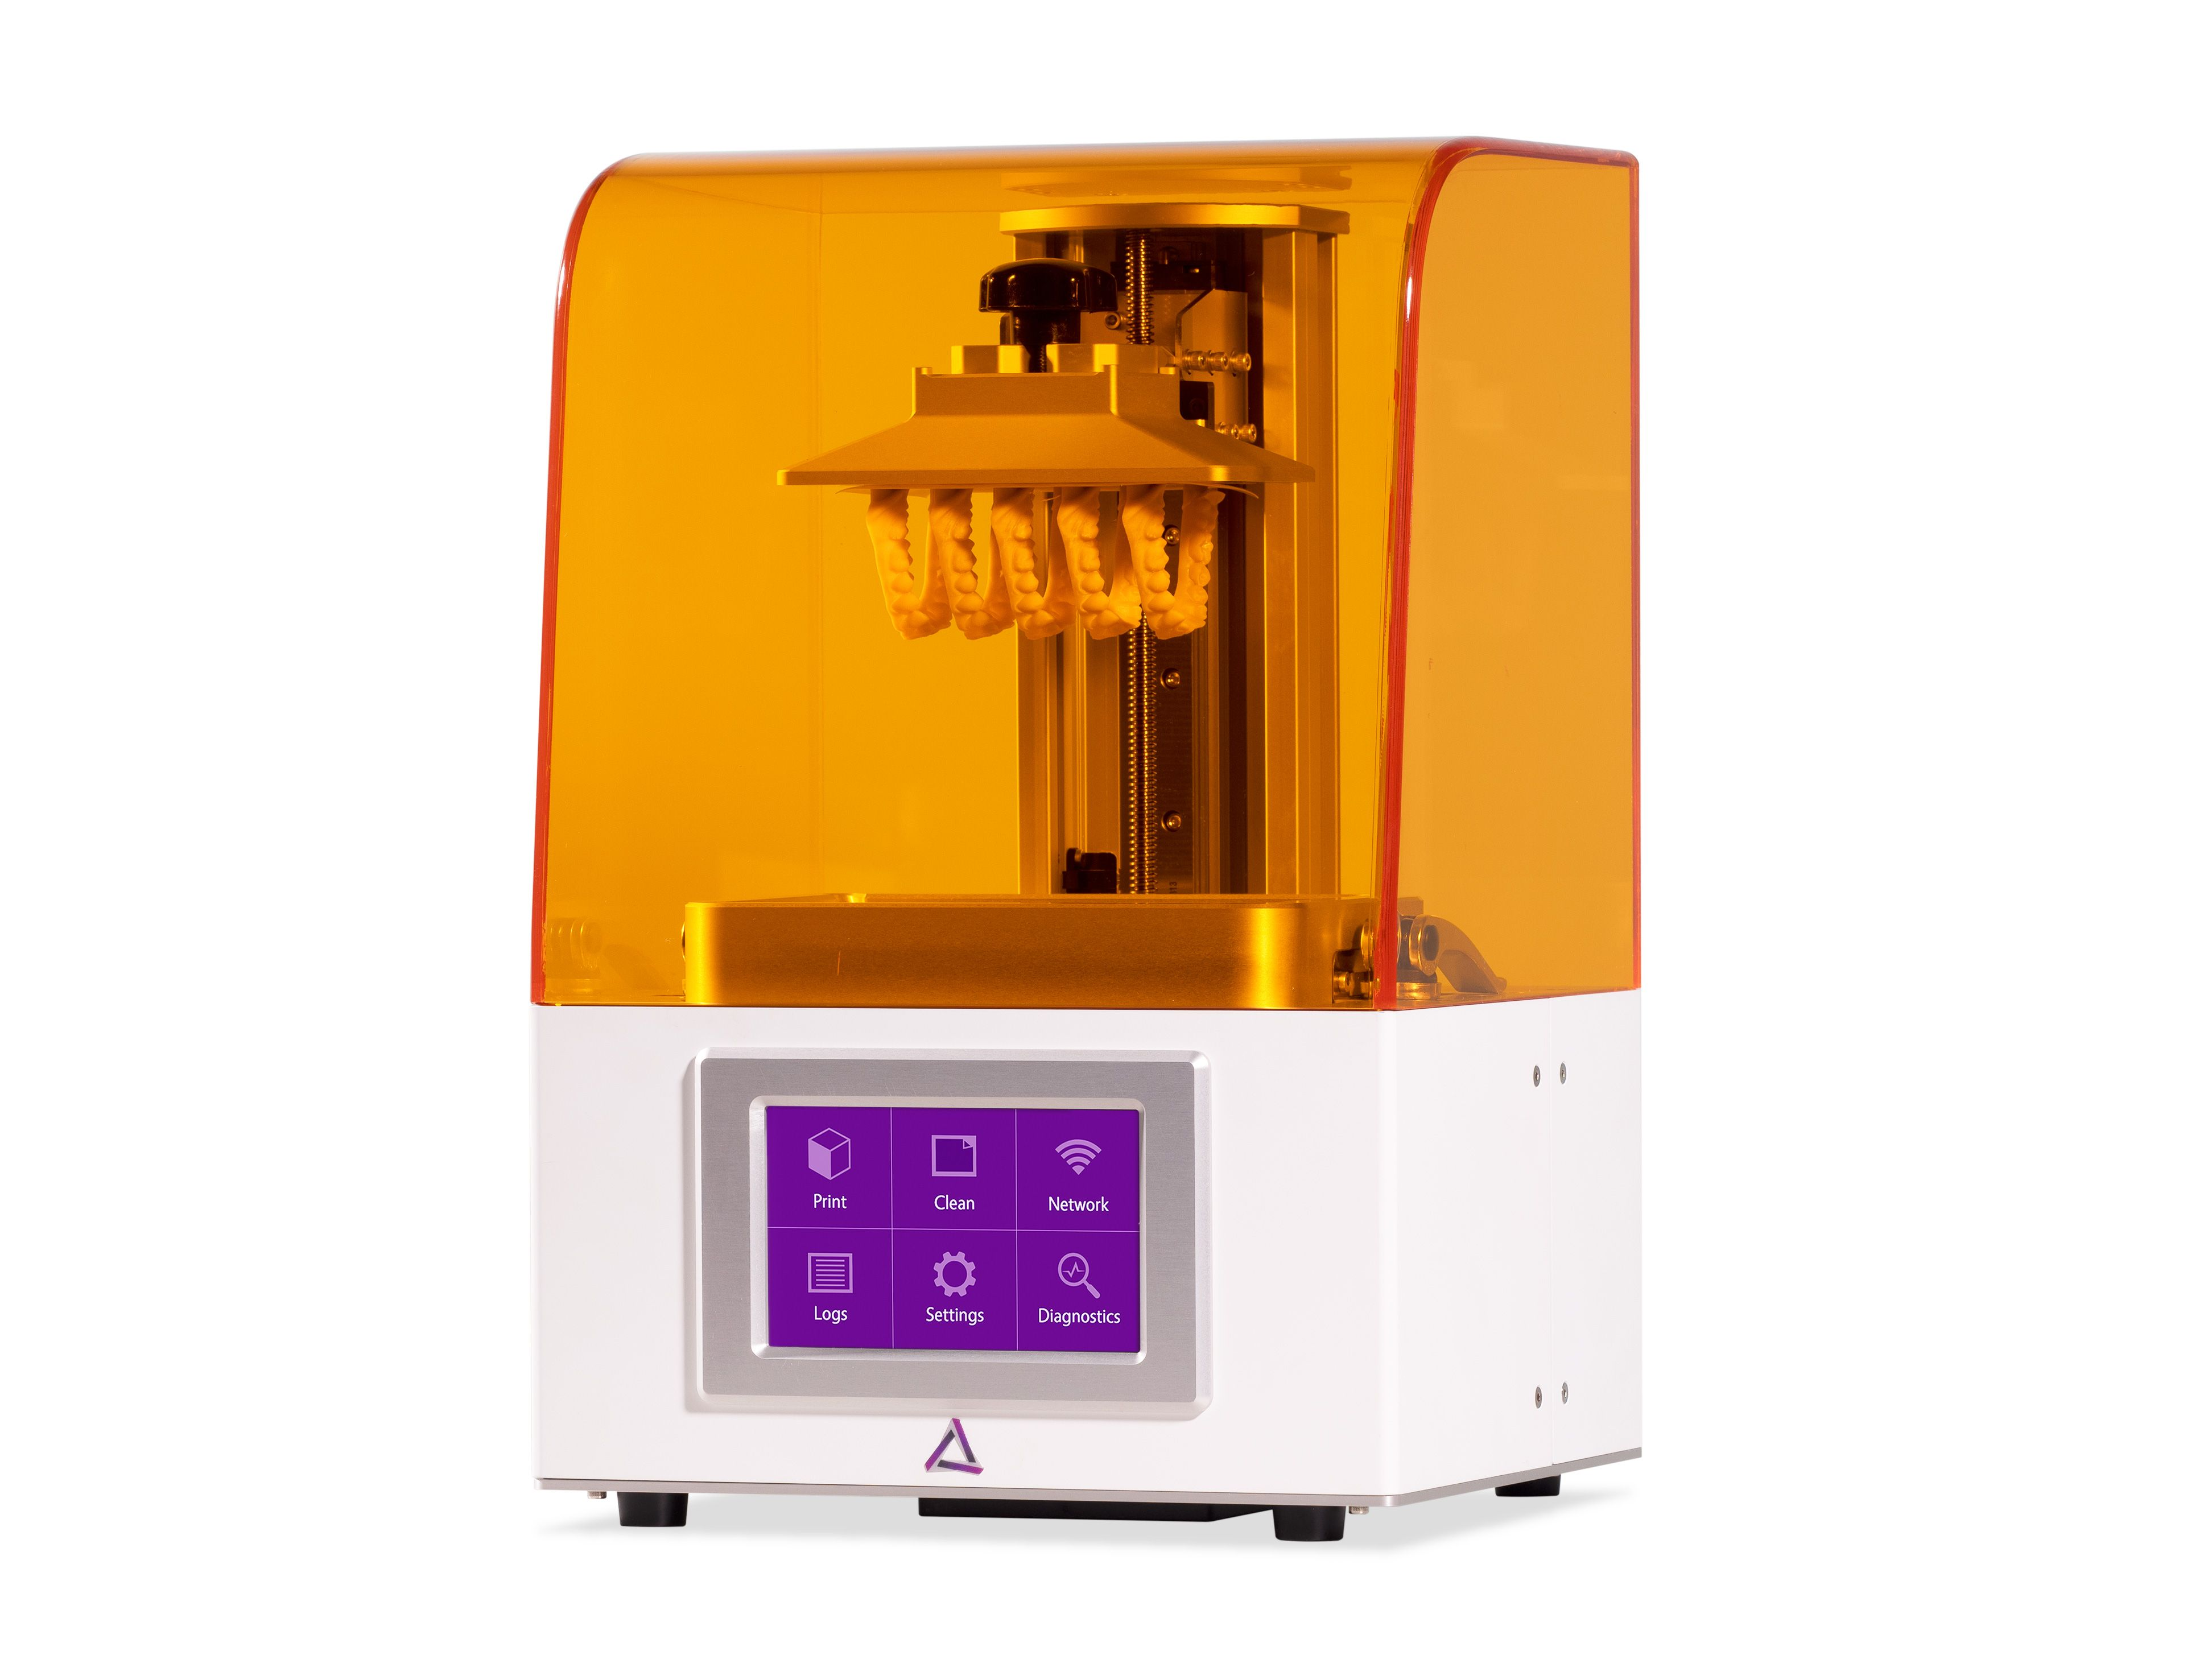 The FreeShape professional-grade 3D printer by Ackuretta is now available from Primotec.